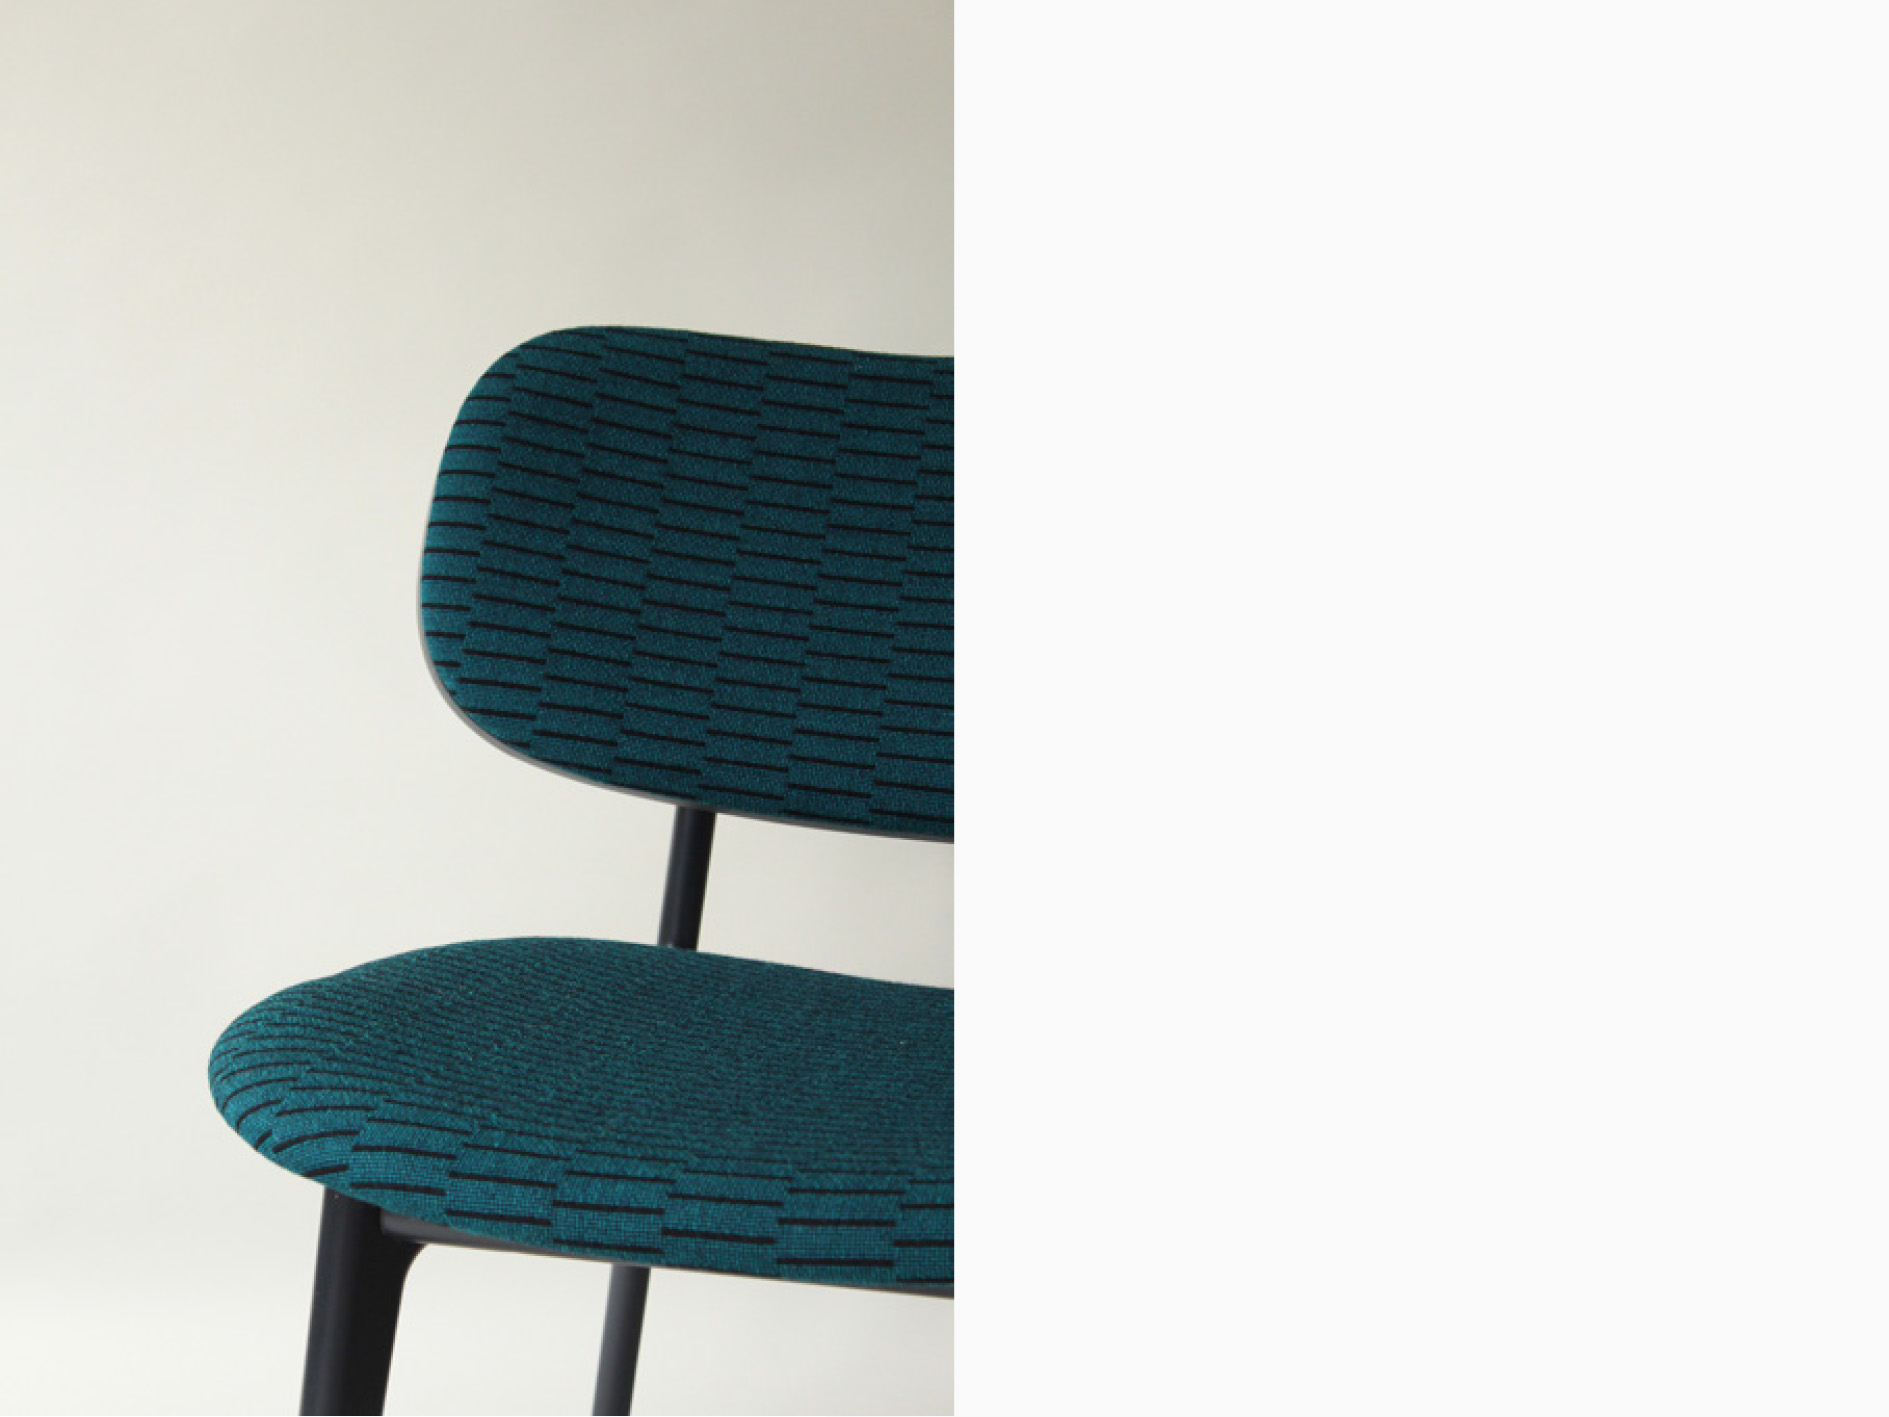 Modus_PLC_lounge_chair_by_PearsonLloyd_with_Caldbeck_fabric_by_Eleanor_Pritchard_detail.jpg